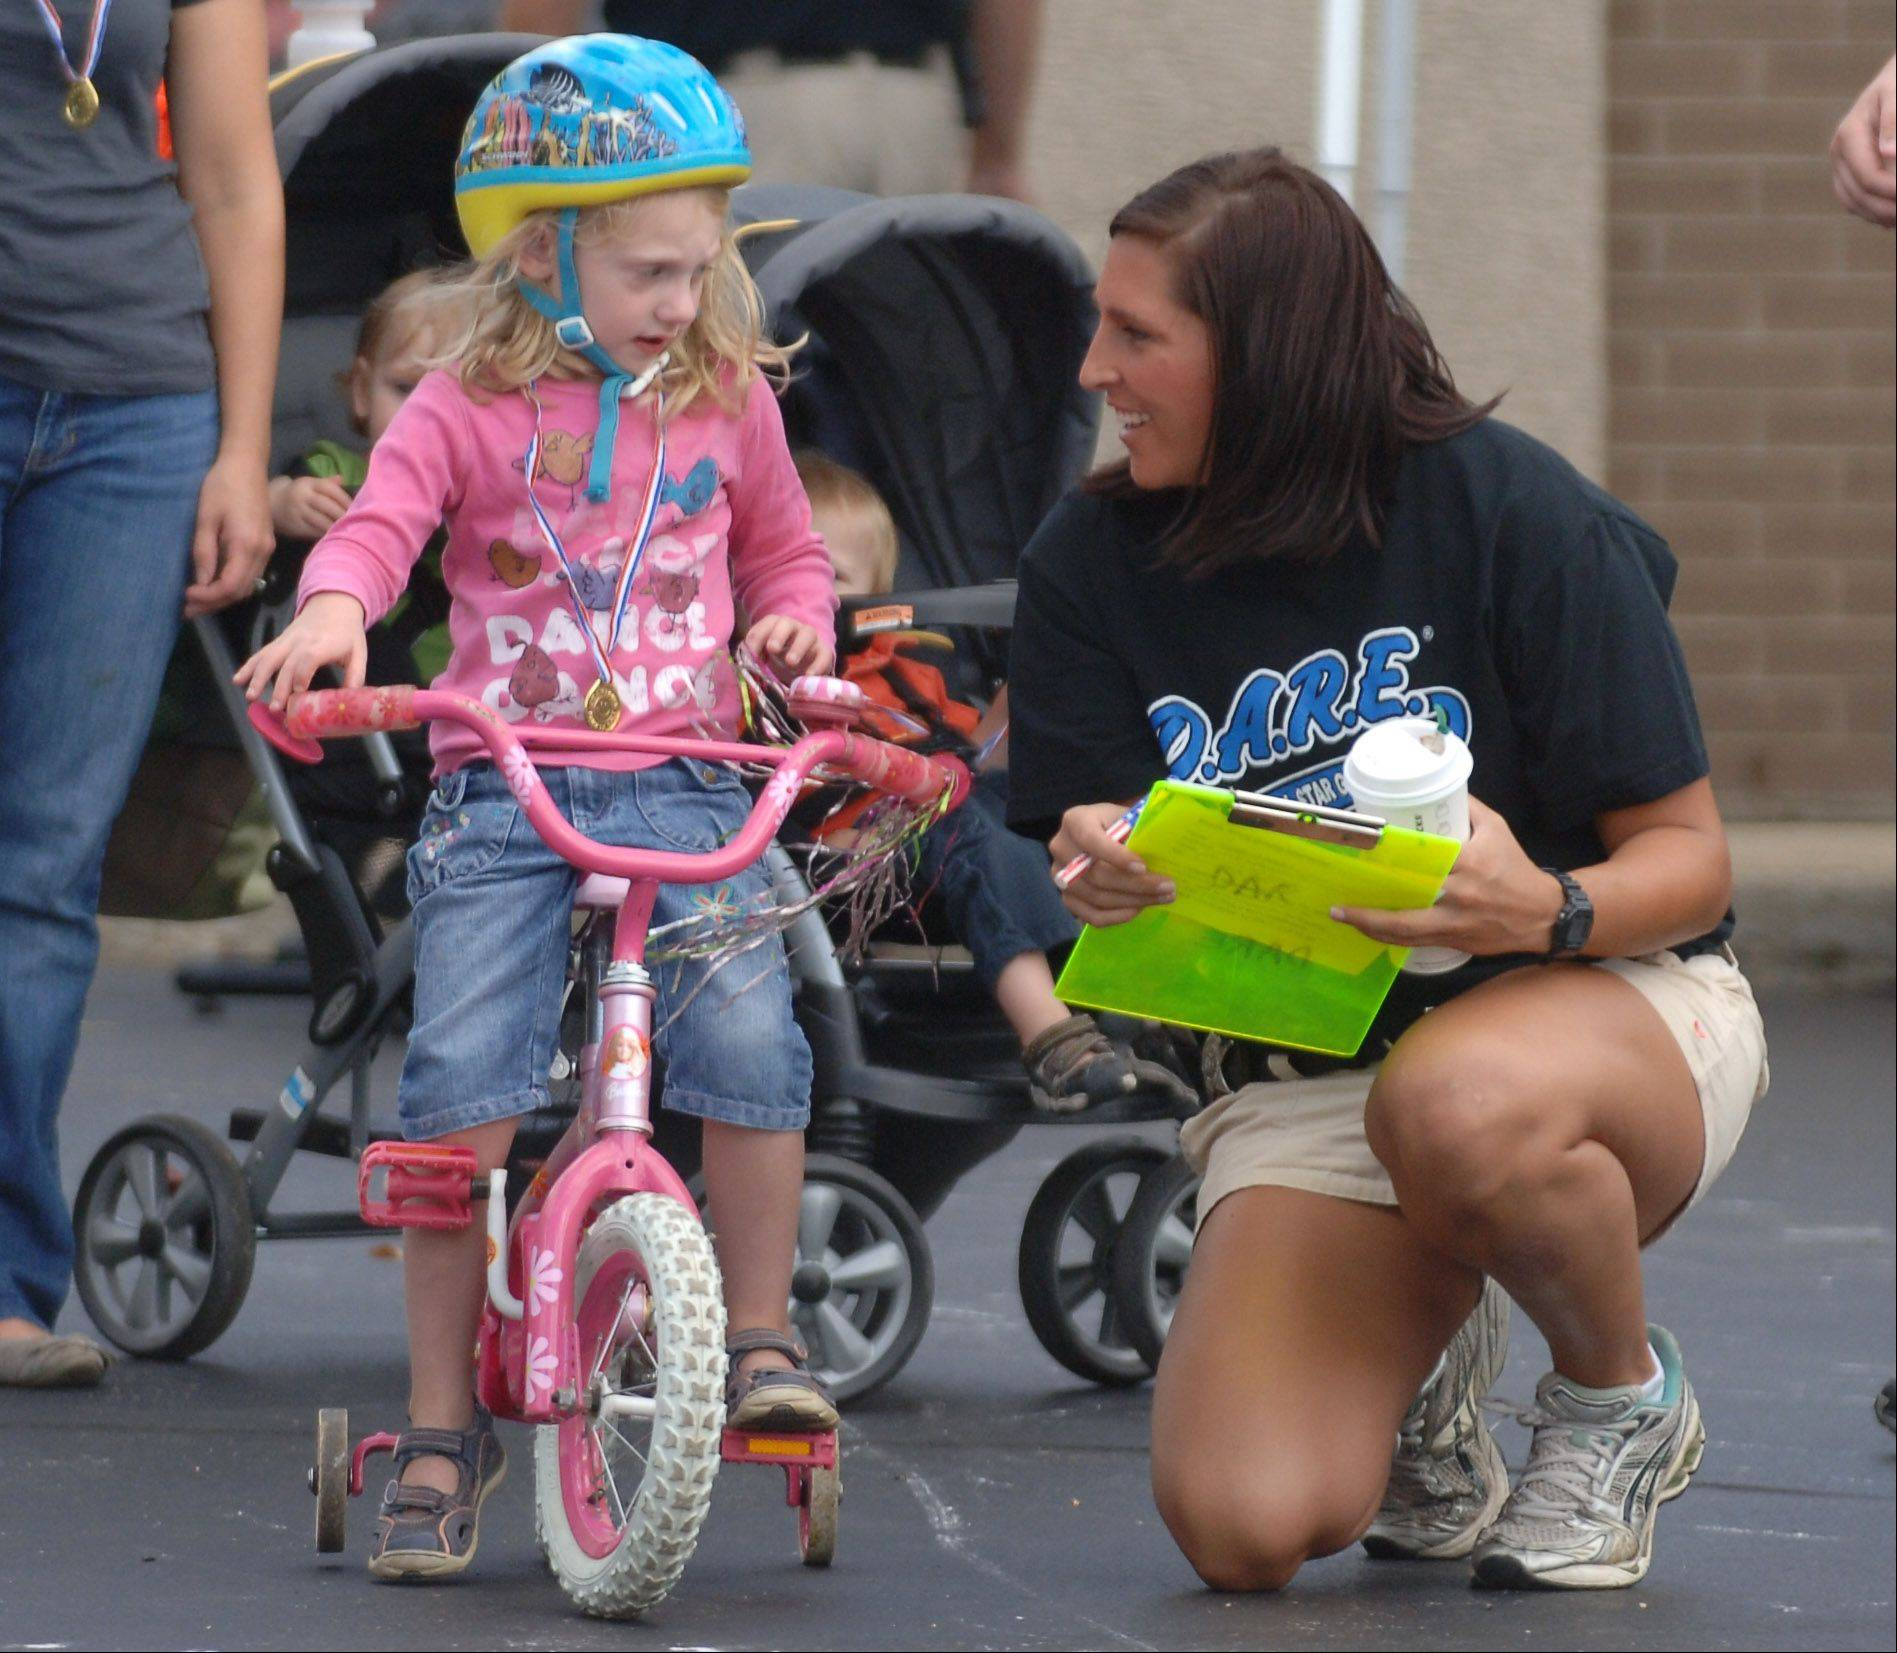 Gurnee police officer Dana Dingman, right, gives instructions to 4-year-old Reese Warwick of Gurnee during the Gurnee Days annual Bike Rodeo Friday at the Gurnee Fire Station #1. Gurnee Days activities continue through Sunday.